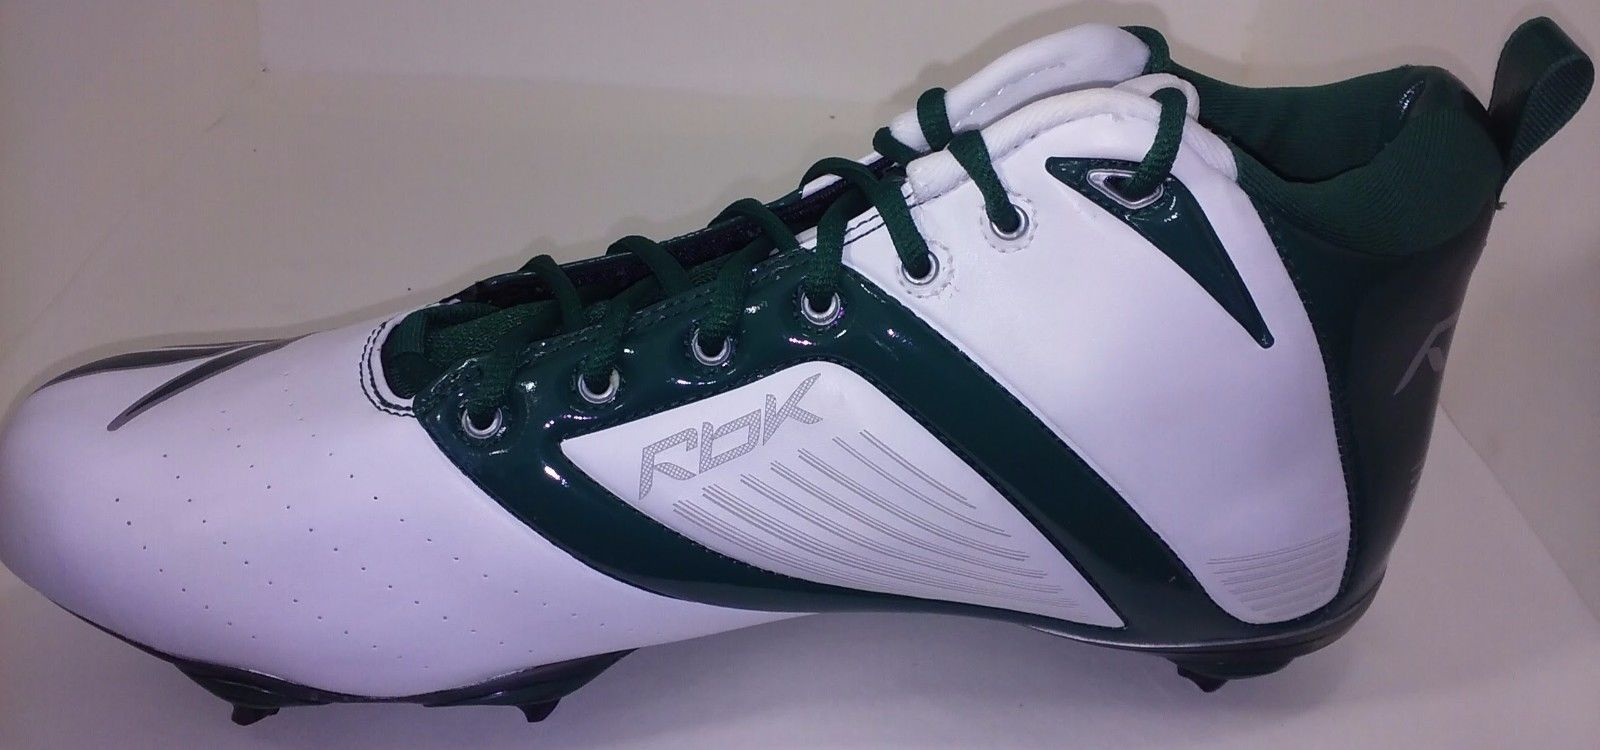 1baedc88d New Reebok NFL Pro All Out Speed Mid SD2 and 10 similar items